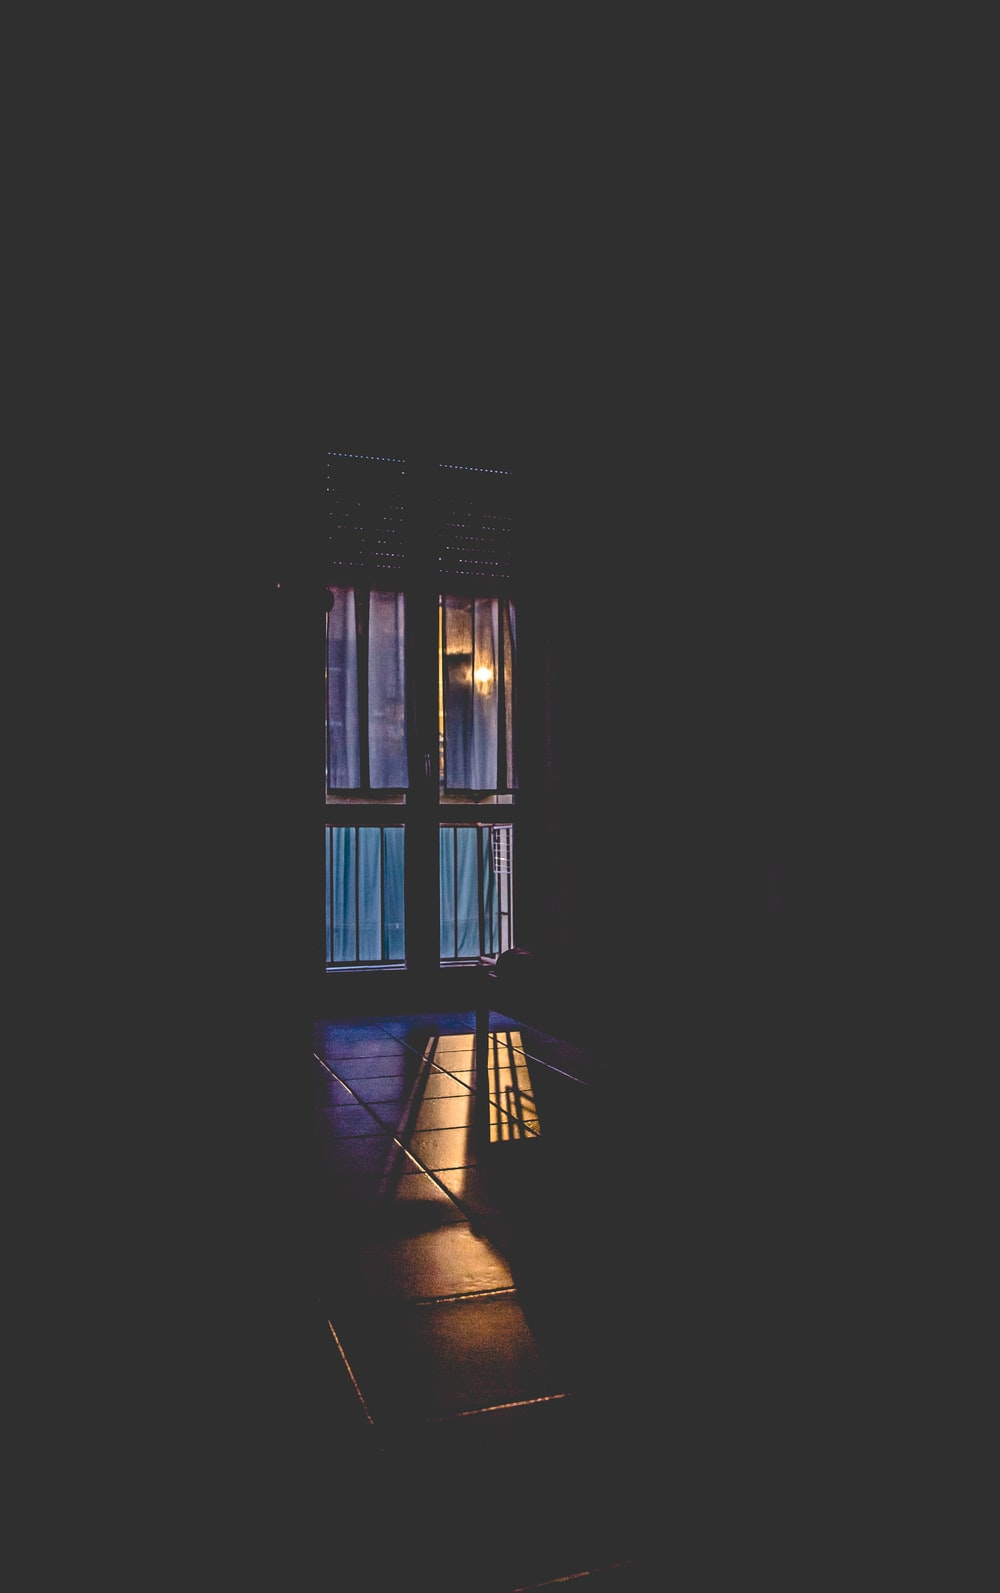 window during golden hour in dark room